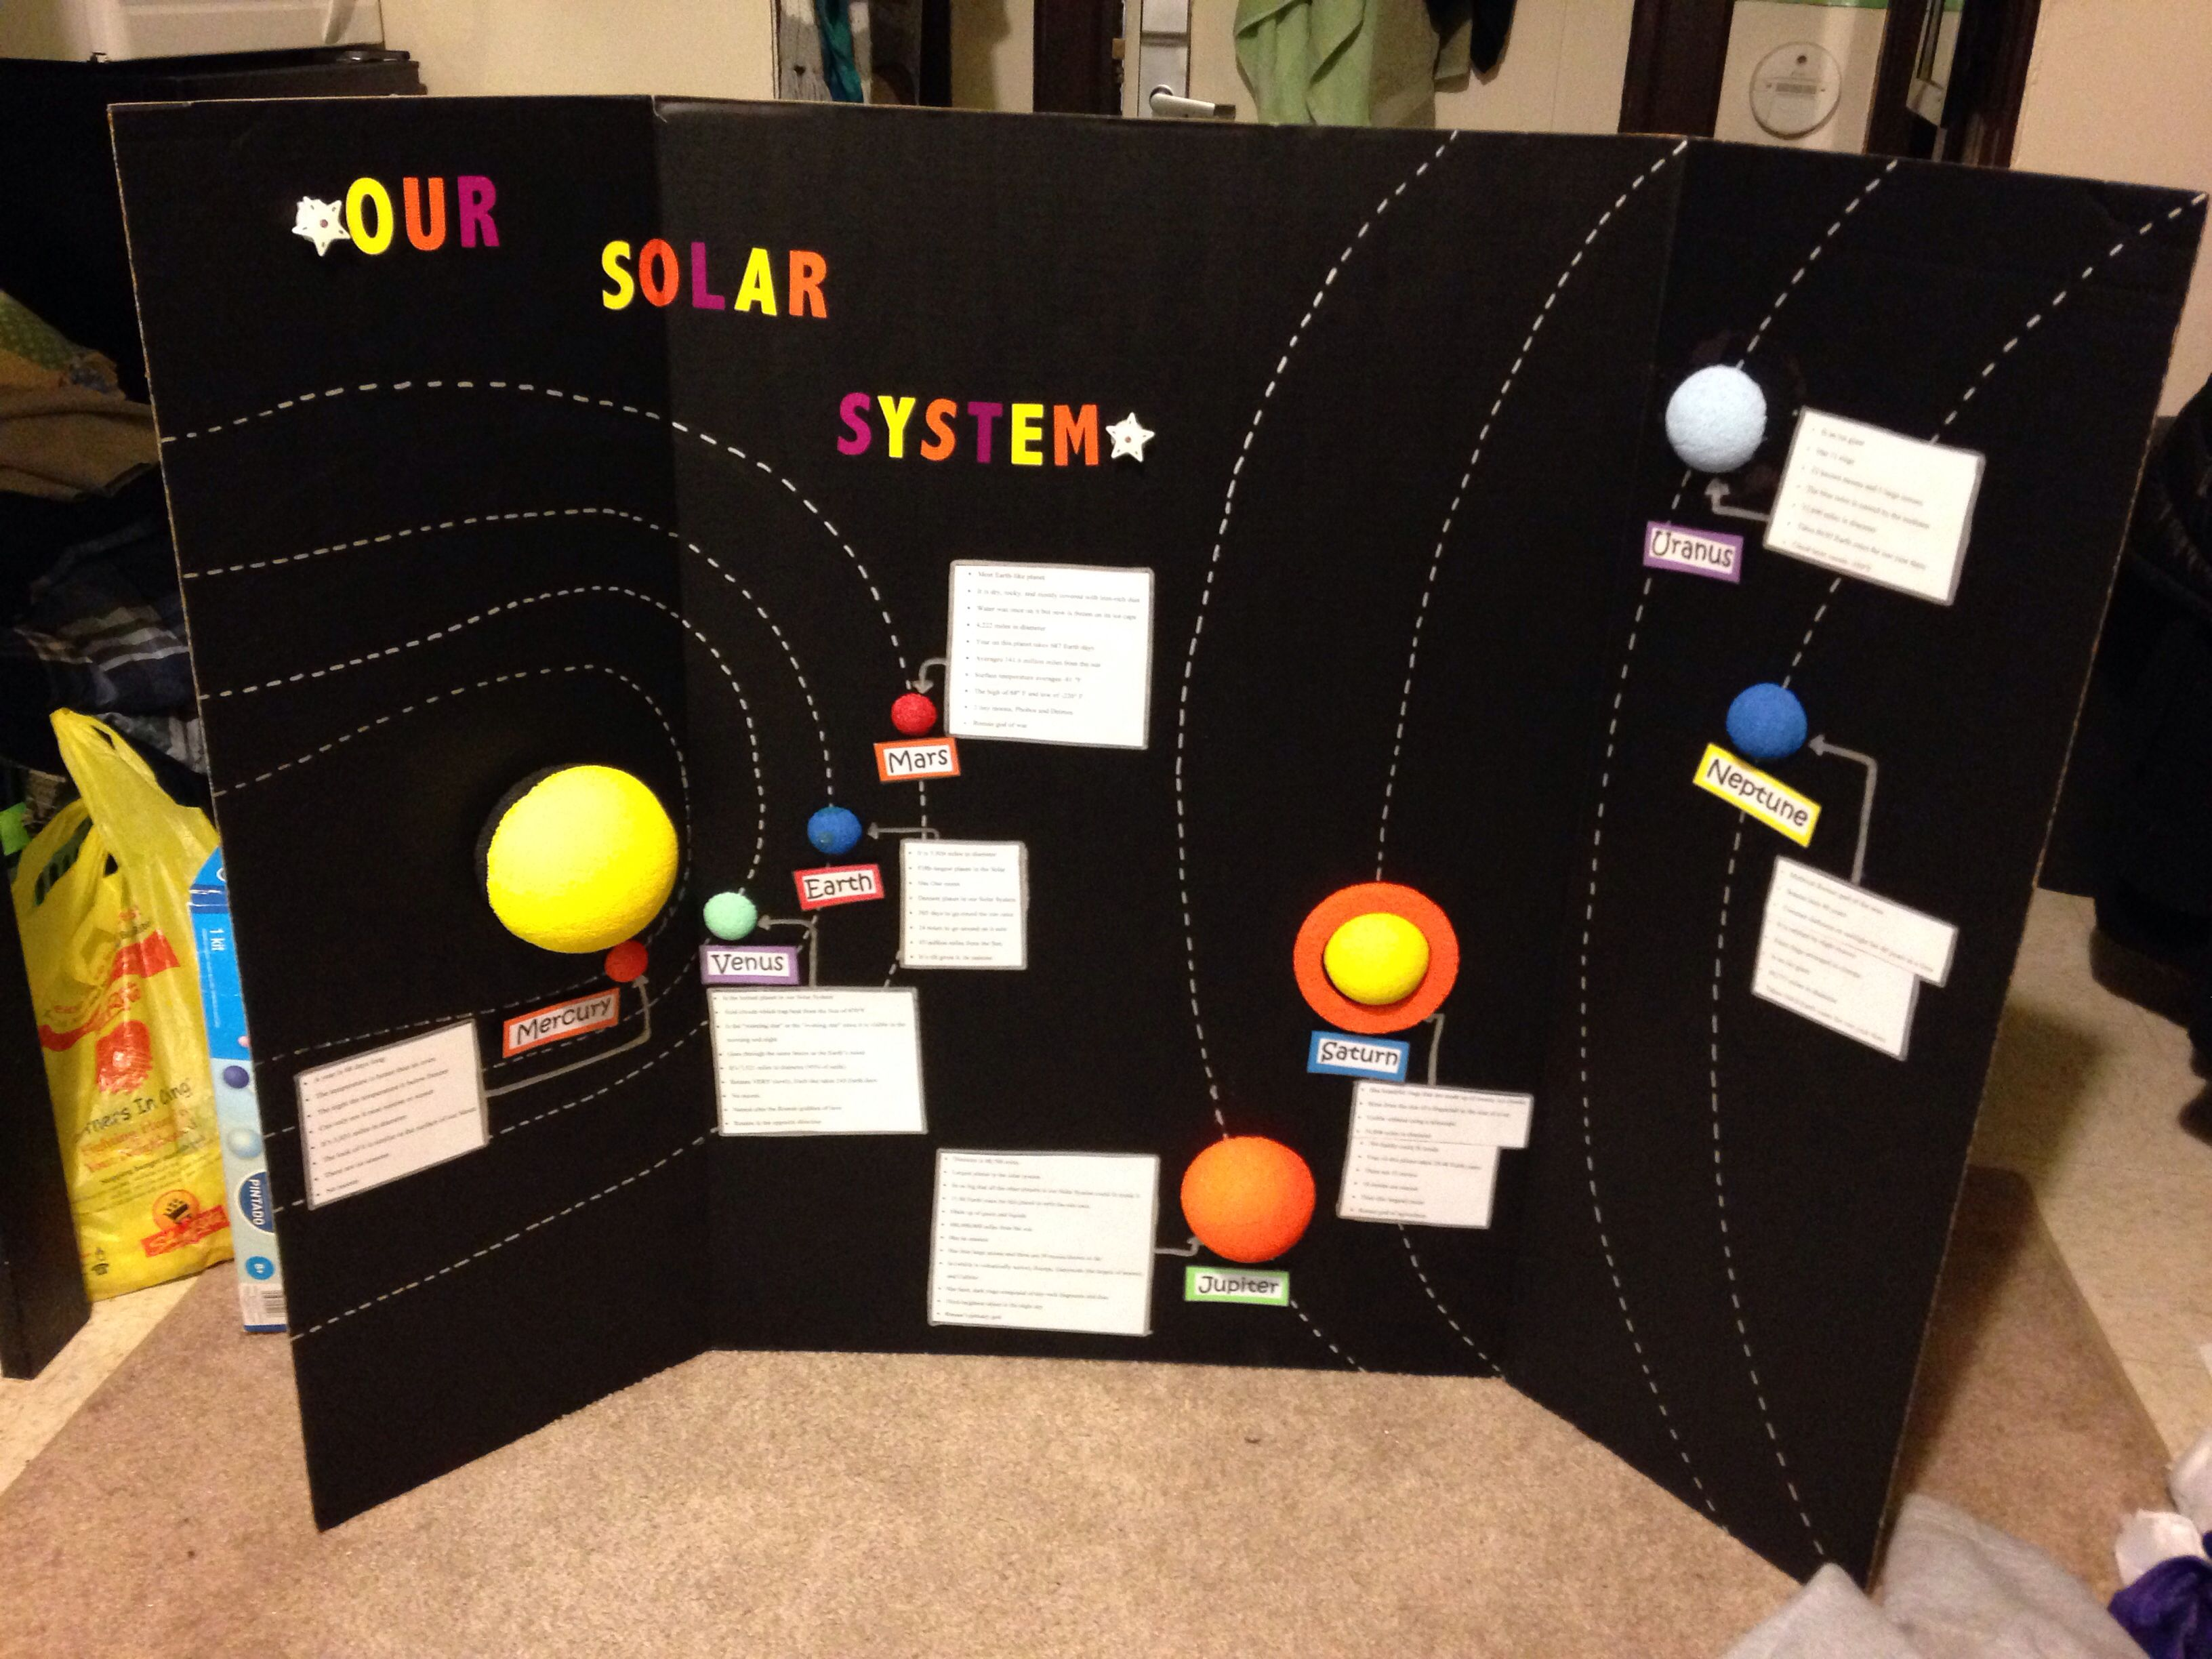 I Love My Planet Project